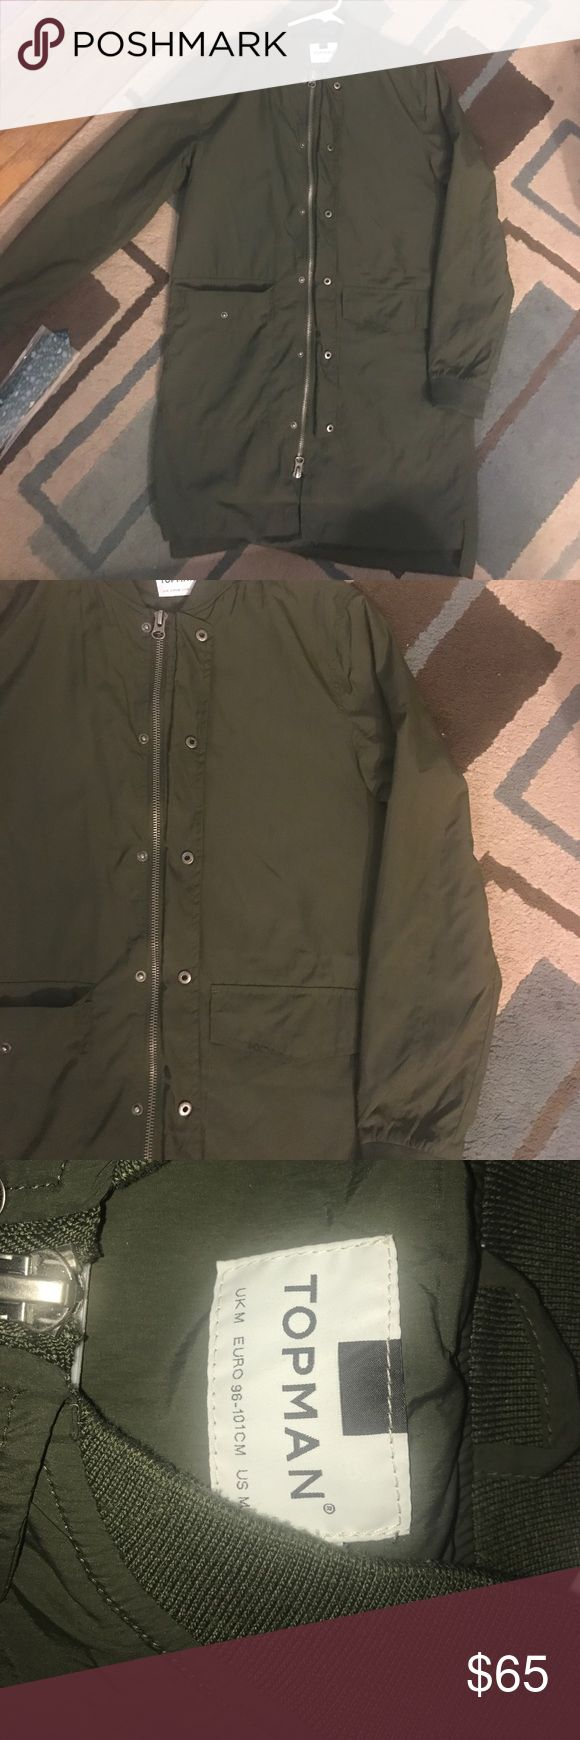 Topman lightweight longline bomber for men Men's TOPMAN longline bomber. Super lightweight in a Khaki green. It's an awesome buy.. only worn 3 times. Double zipper and snap closure. Topman Jackets & Coats